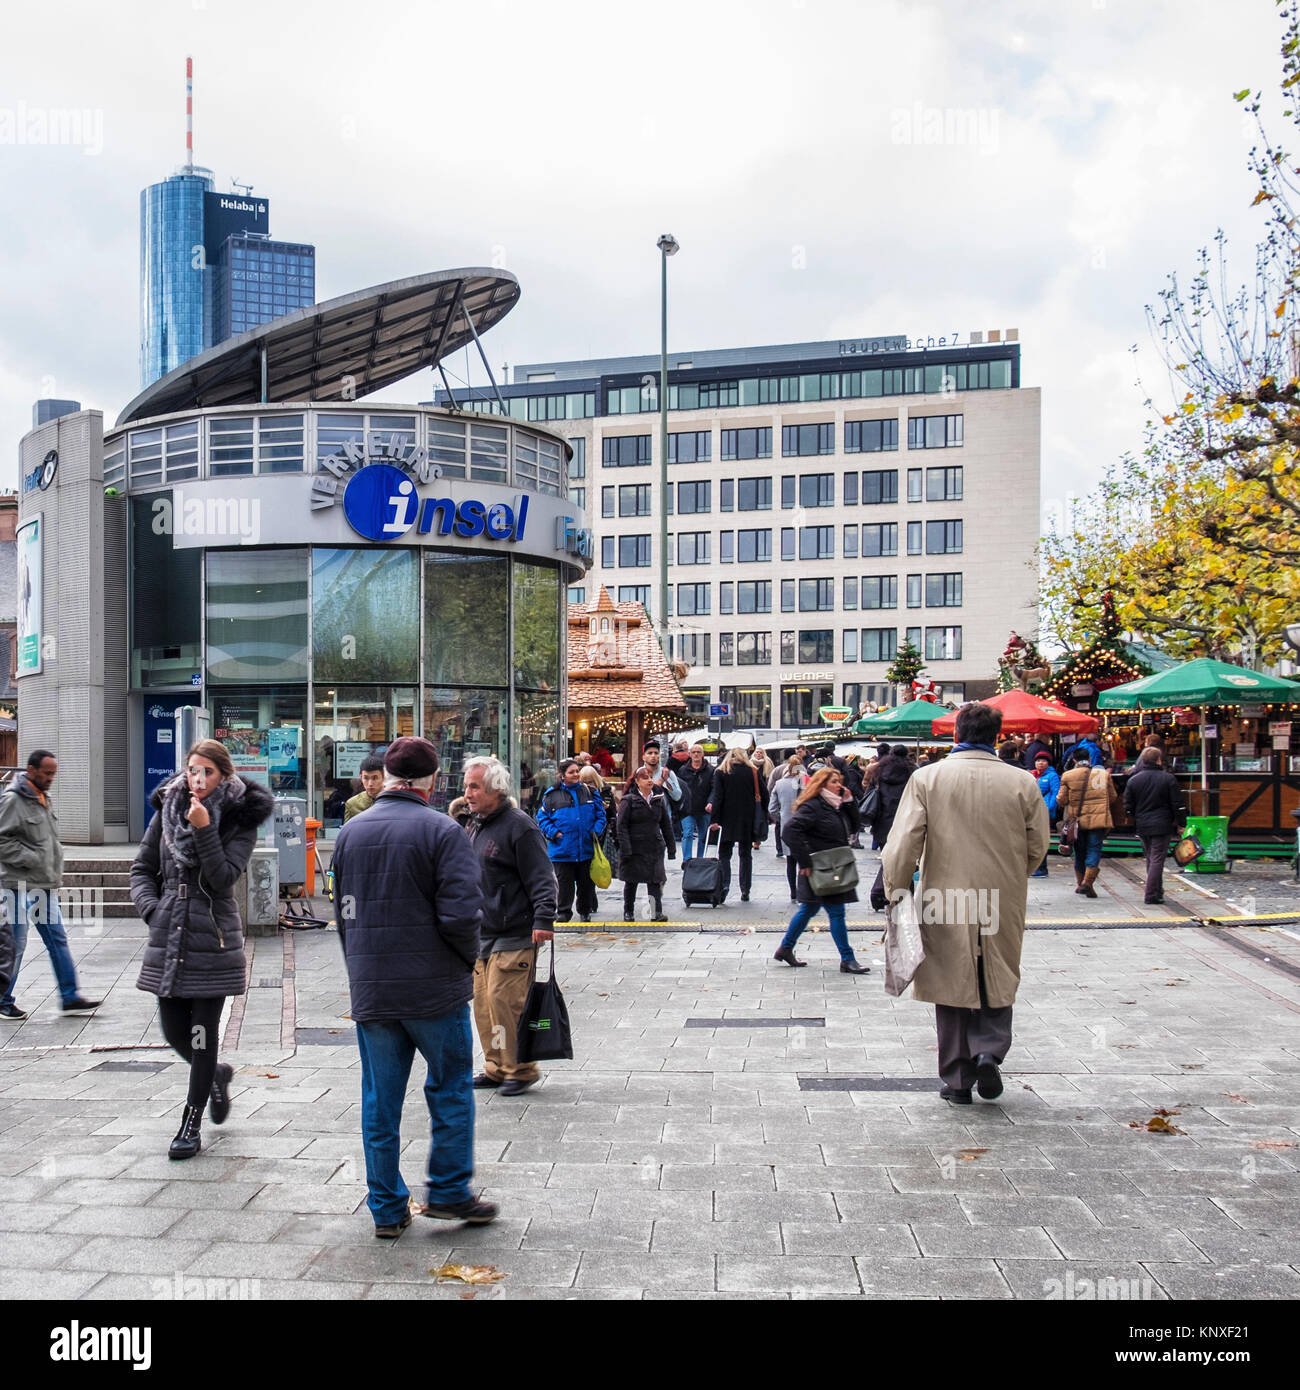 Germany,Frankfurt,TraffiQ Mobility Center on Hauptwache square provides information for commuters about transport,travel,commuting - Stock Image